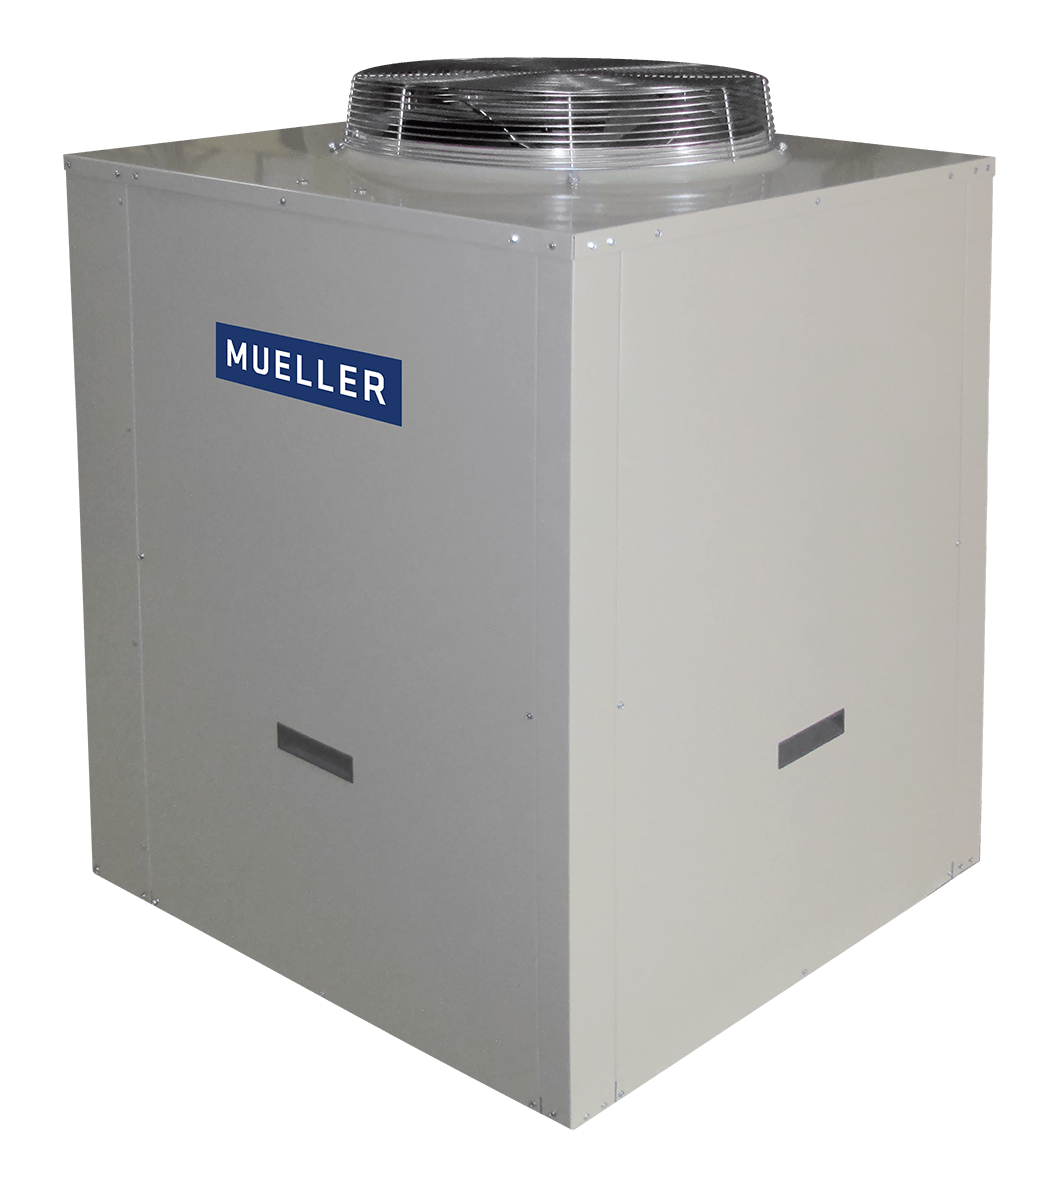 Package Water Chiller with Logo Image